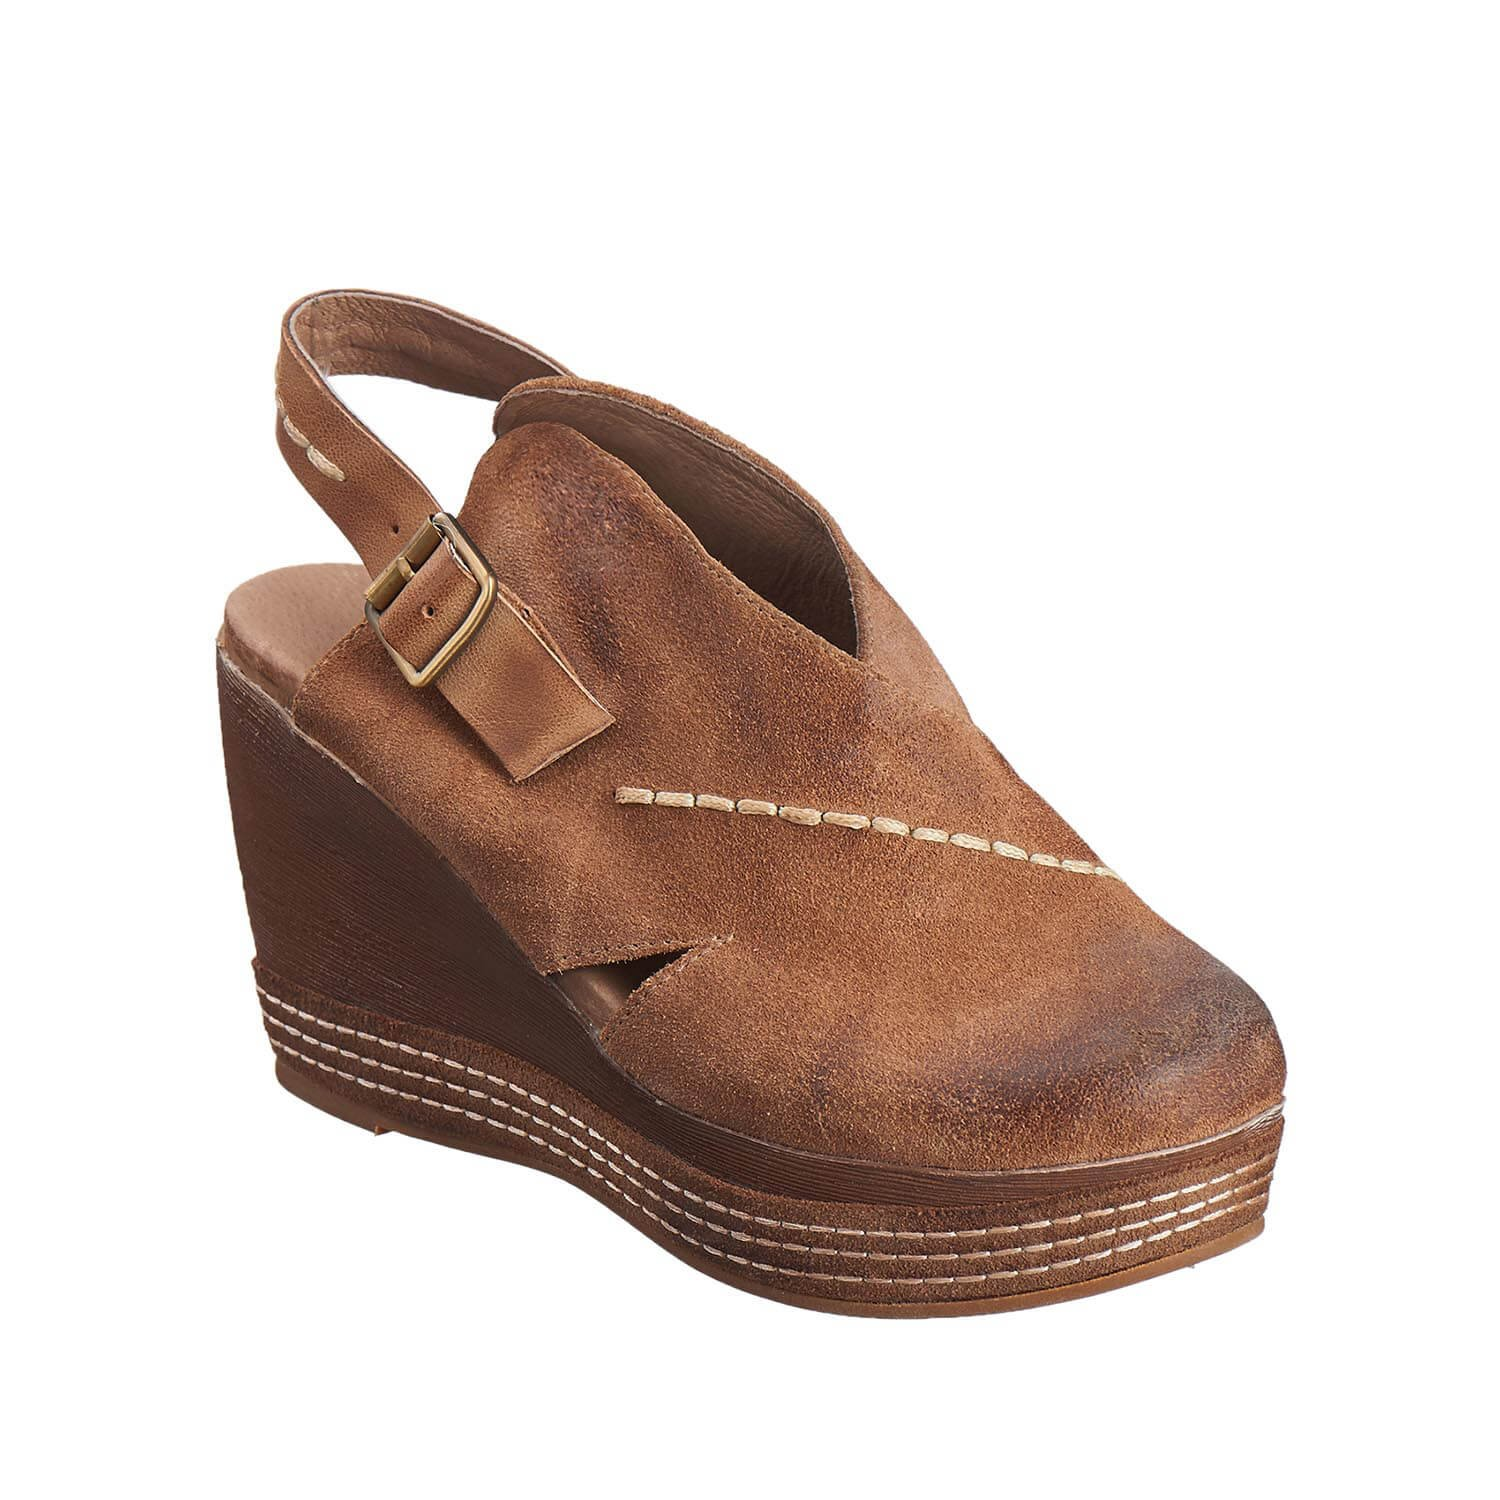 Antelope Women's 836 Taupe Suede Cutout Sling Wedge 38 by Antelope (Image #1)